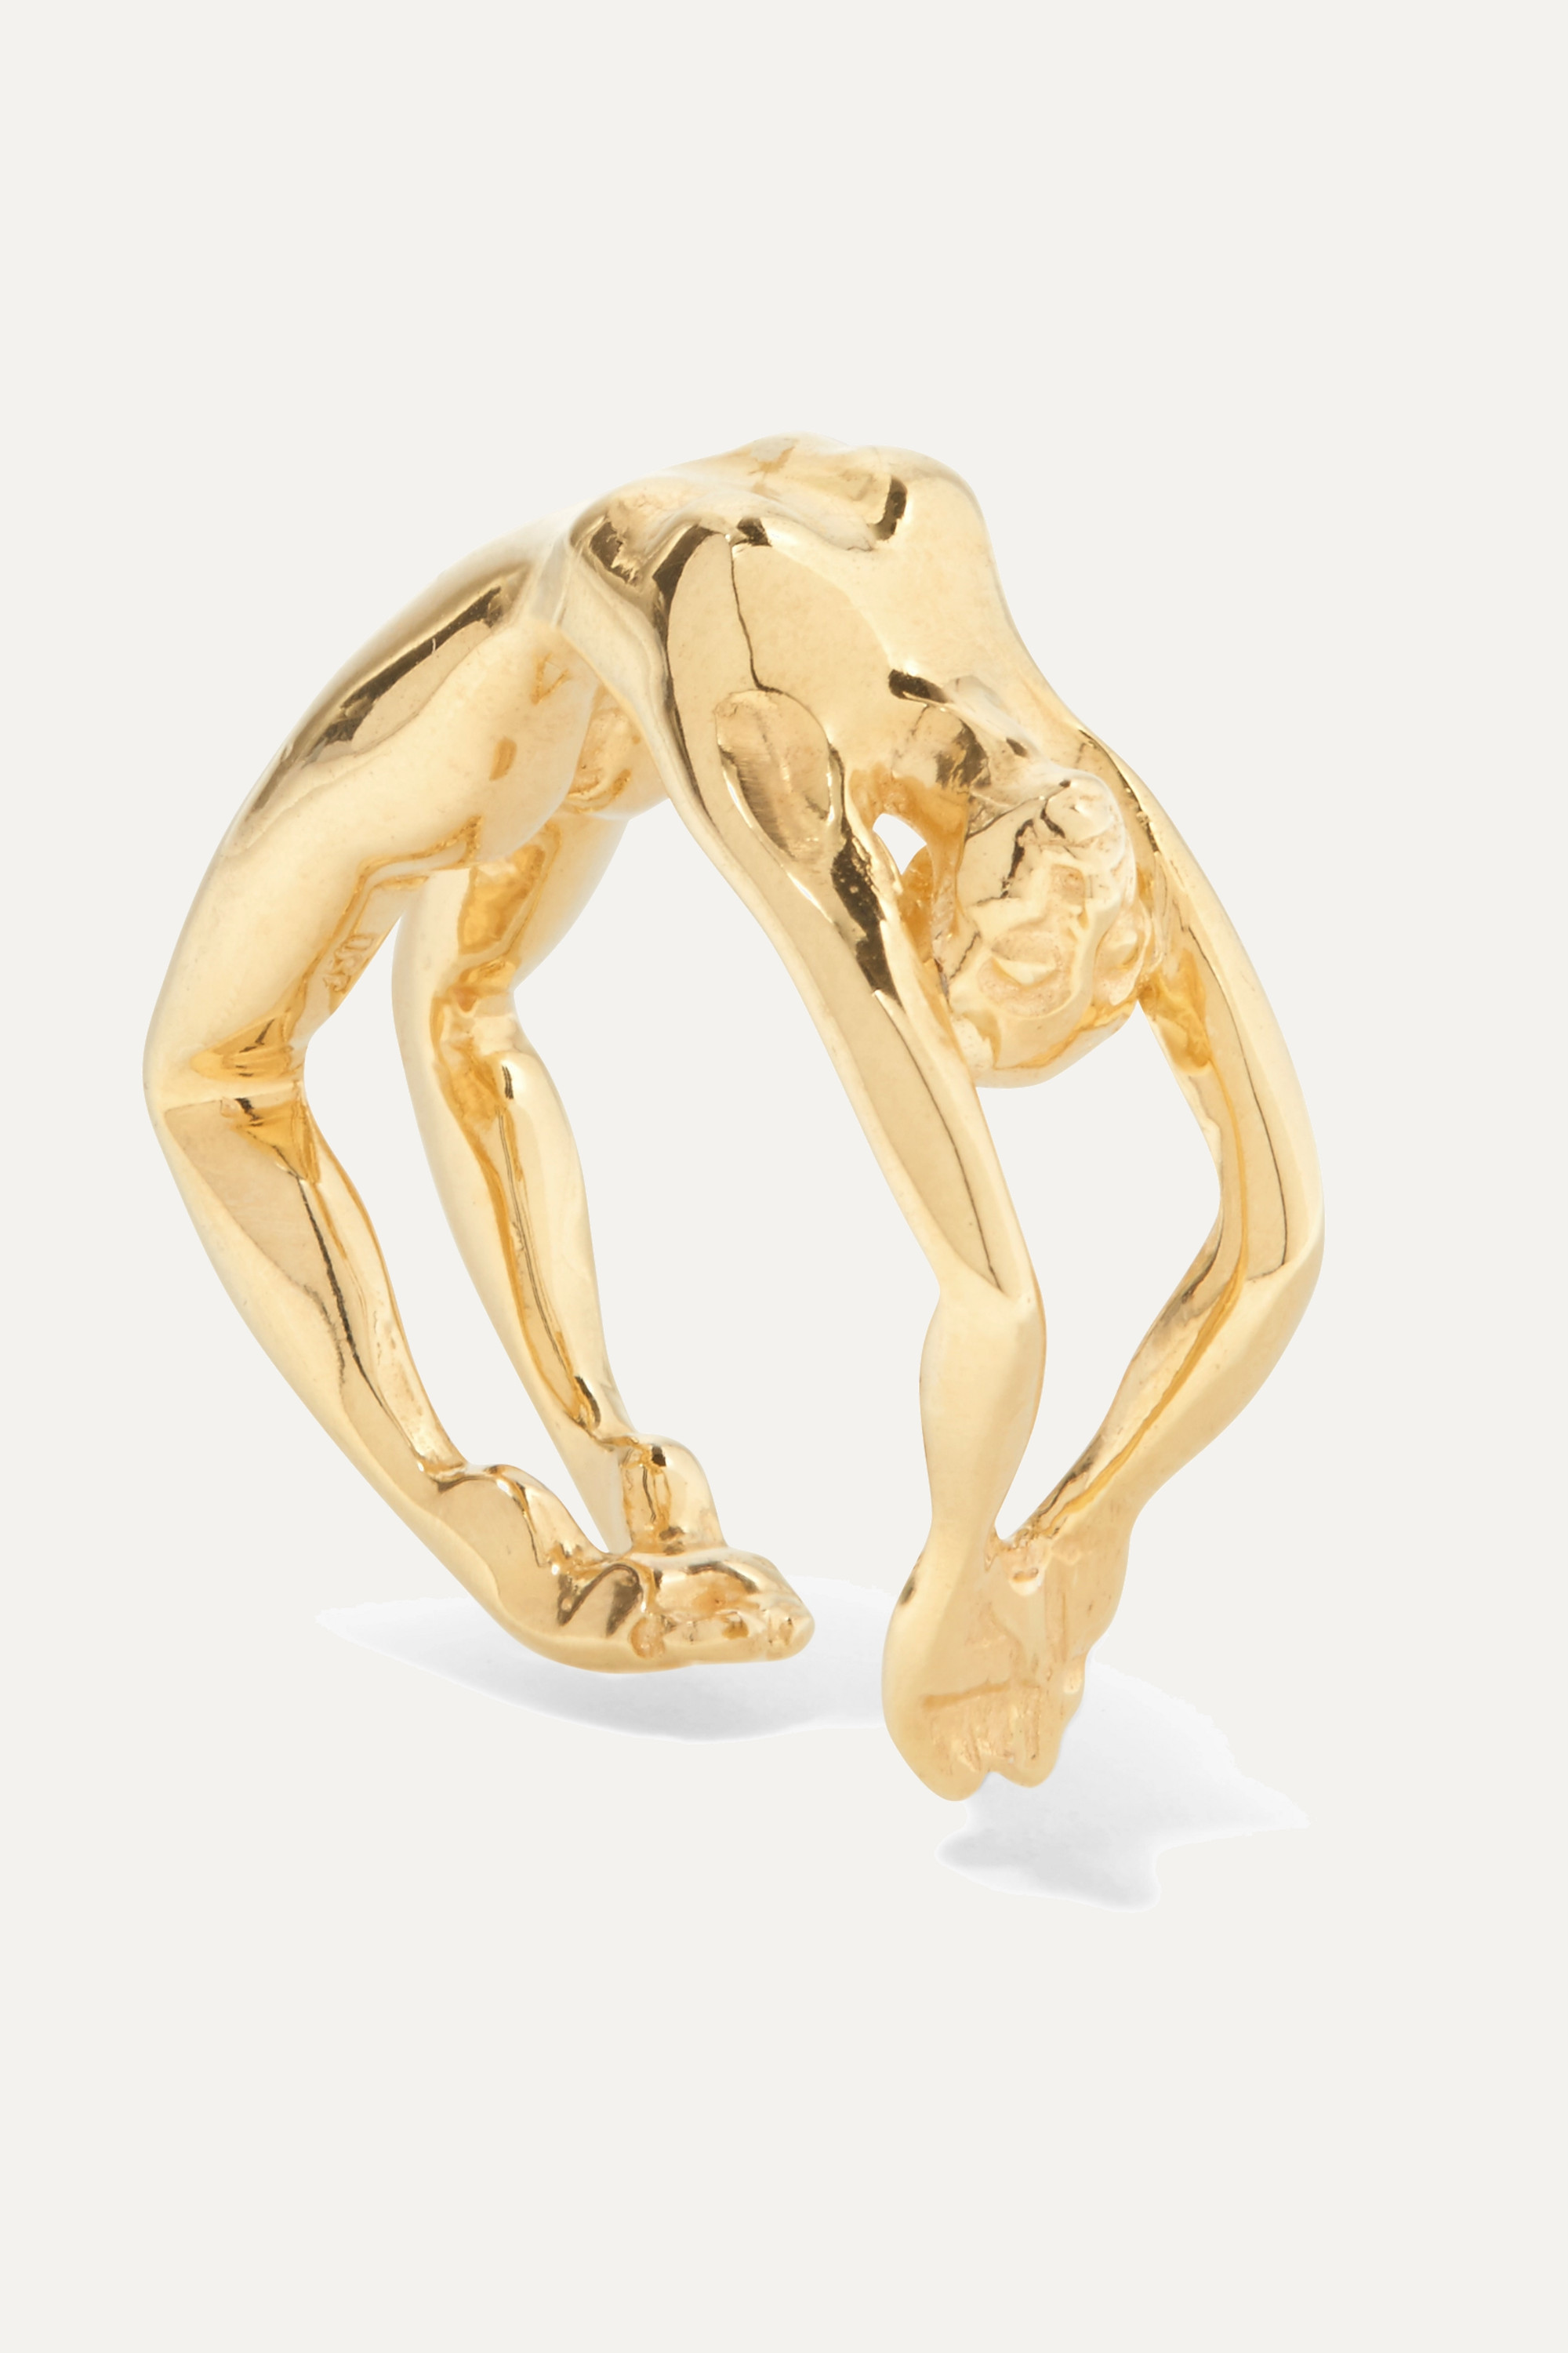 Paola Vilas Louise gold-plated ring